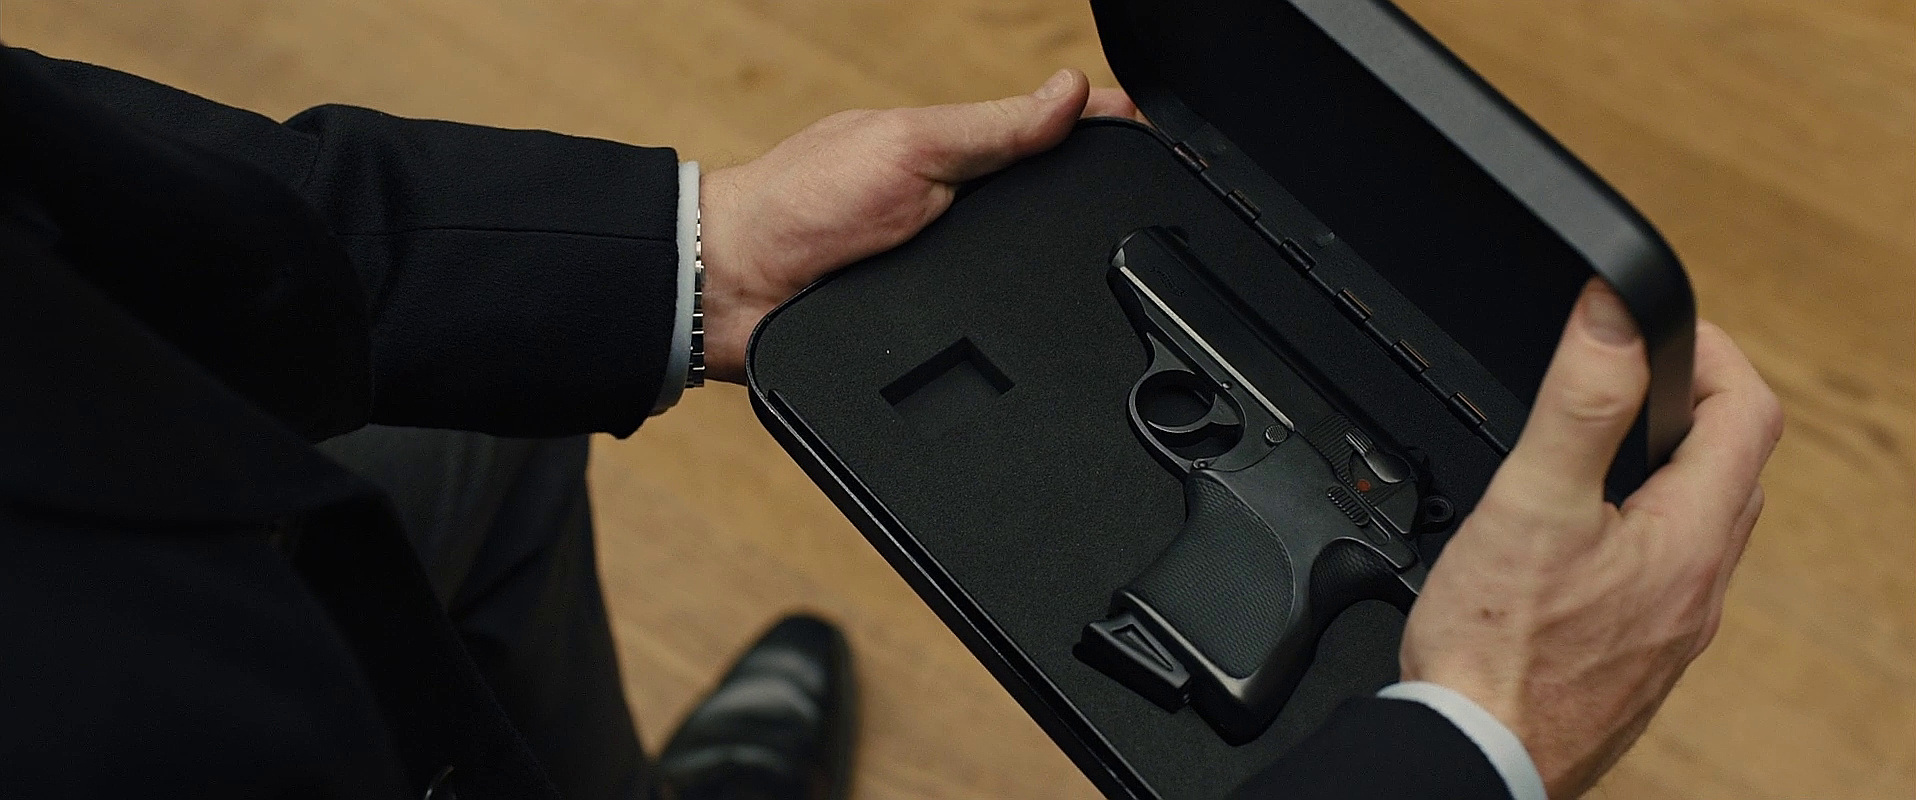 Walther PPK/S | James Bond Wiki | FANDOM powered by Wikia